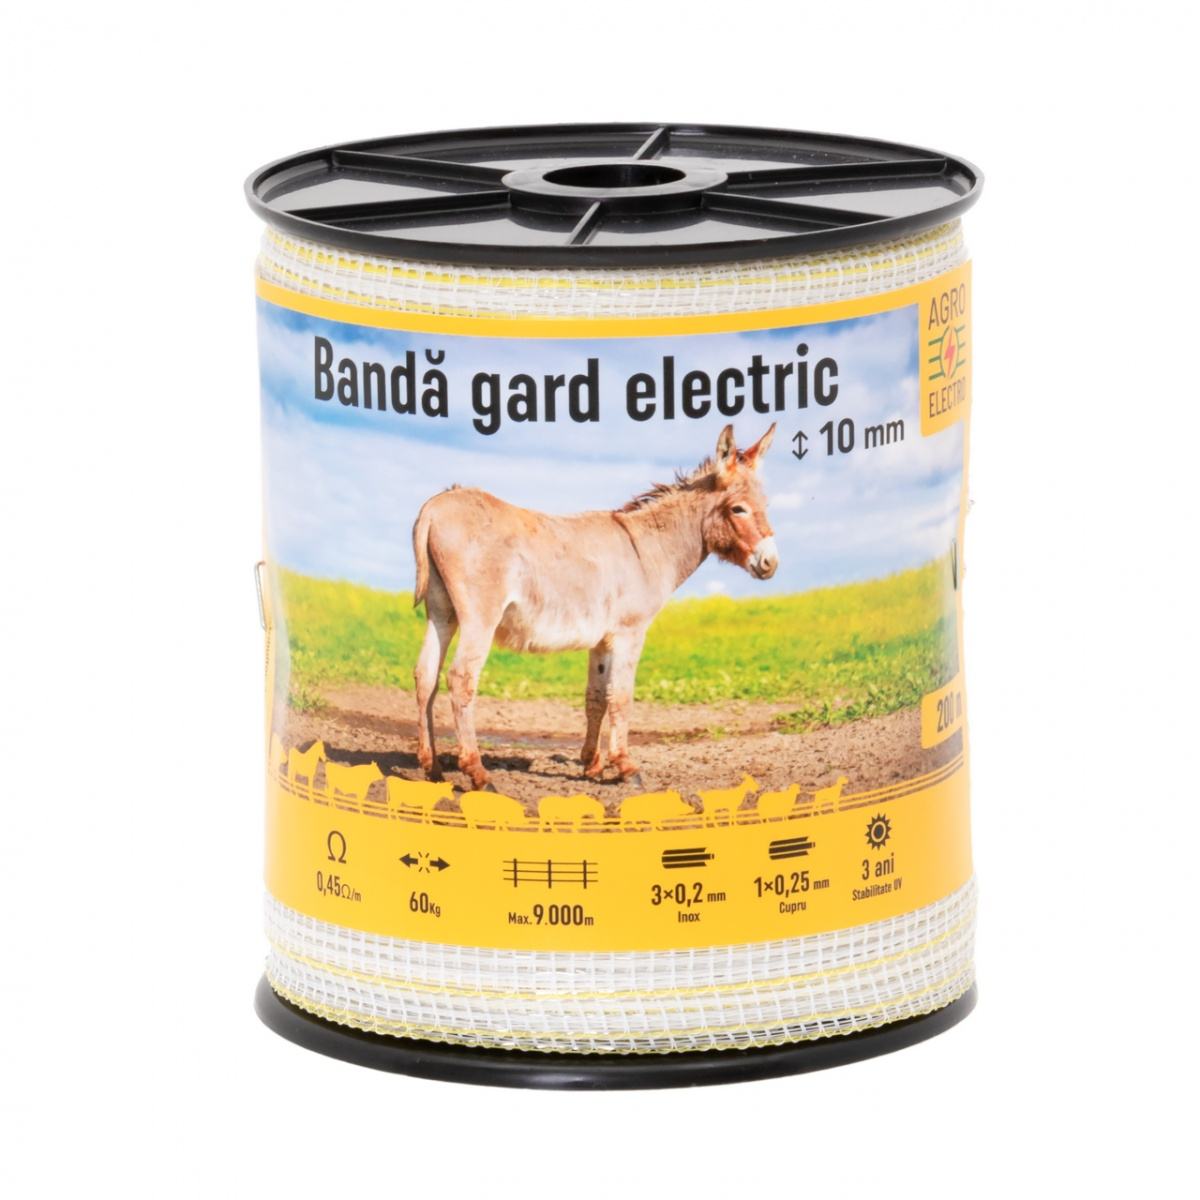 Bandă gard electric - 10 mm - 200 m - 60 kg - 0,45 Ω/m